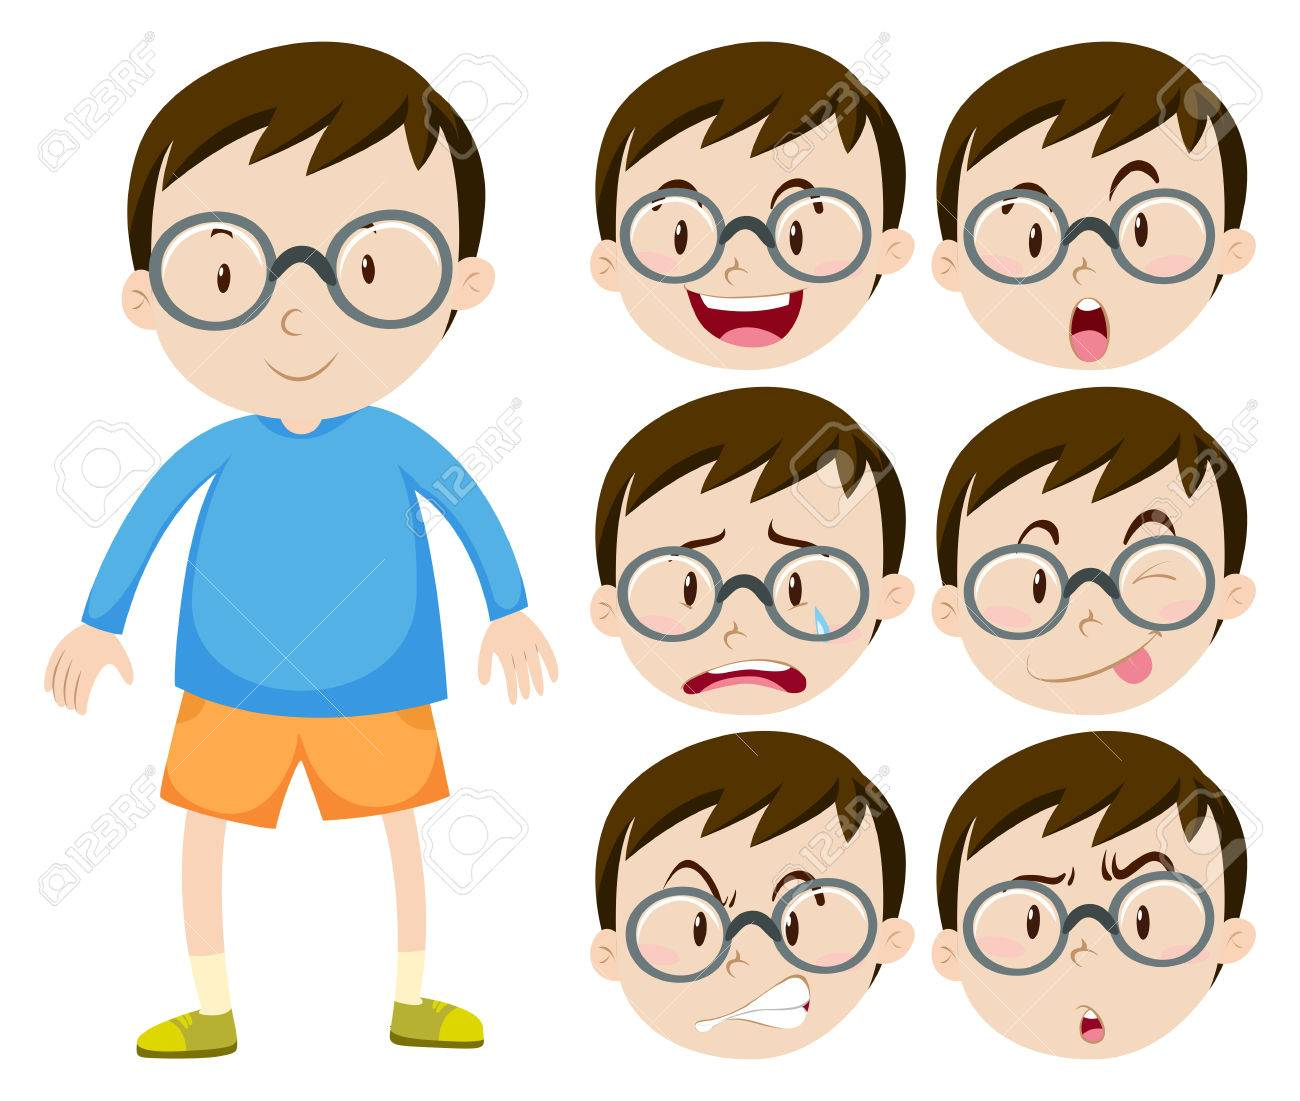 Little boy with glasses and many facial expressions illustration.